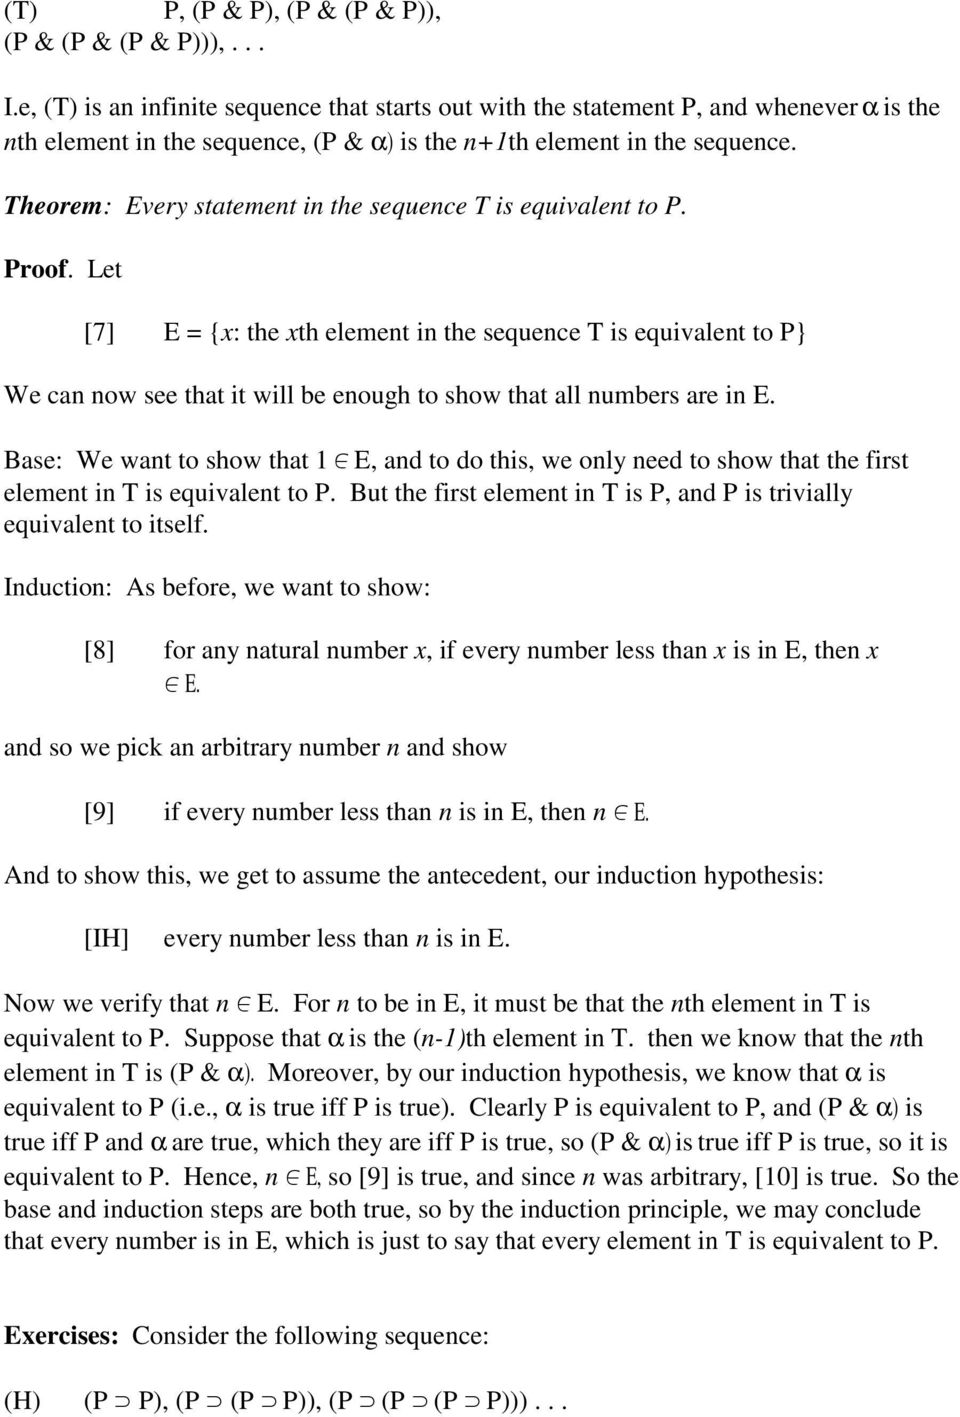 heorem: Every statement in the sequence is equivalent to P. Proof.